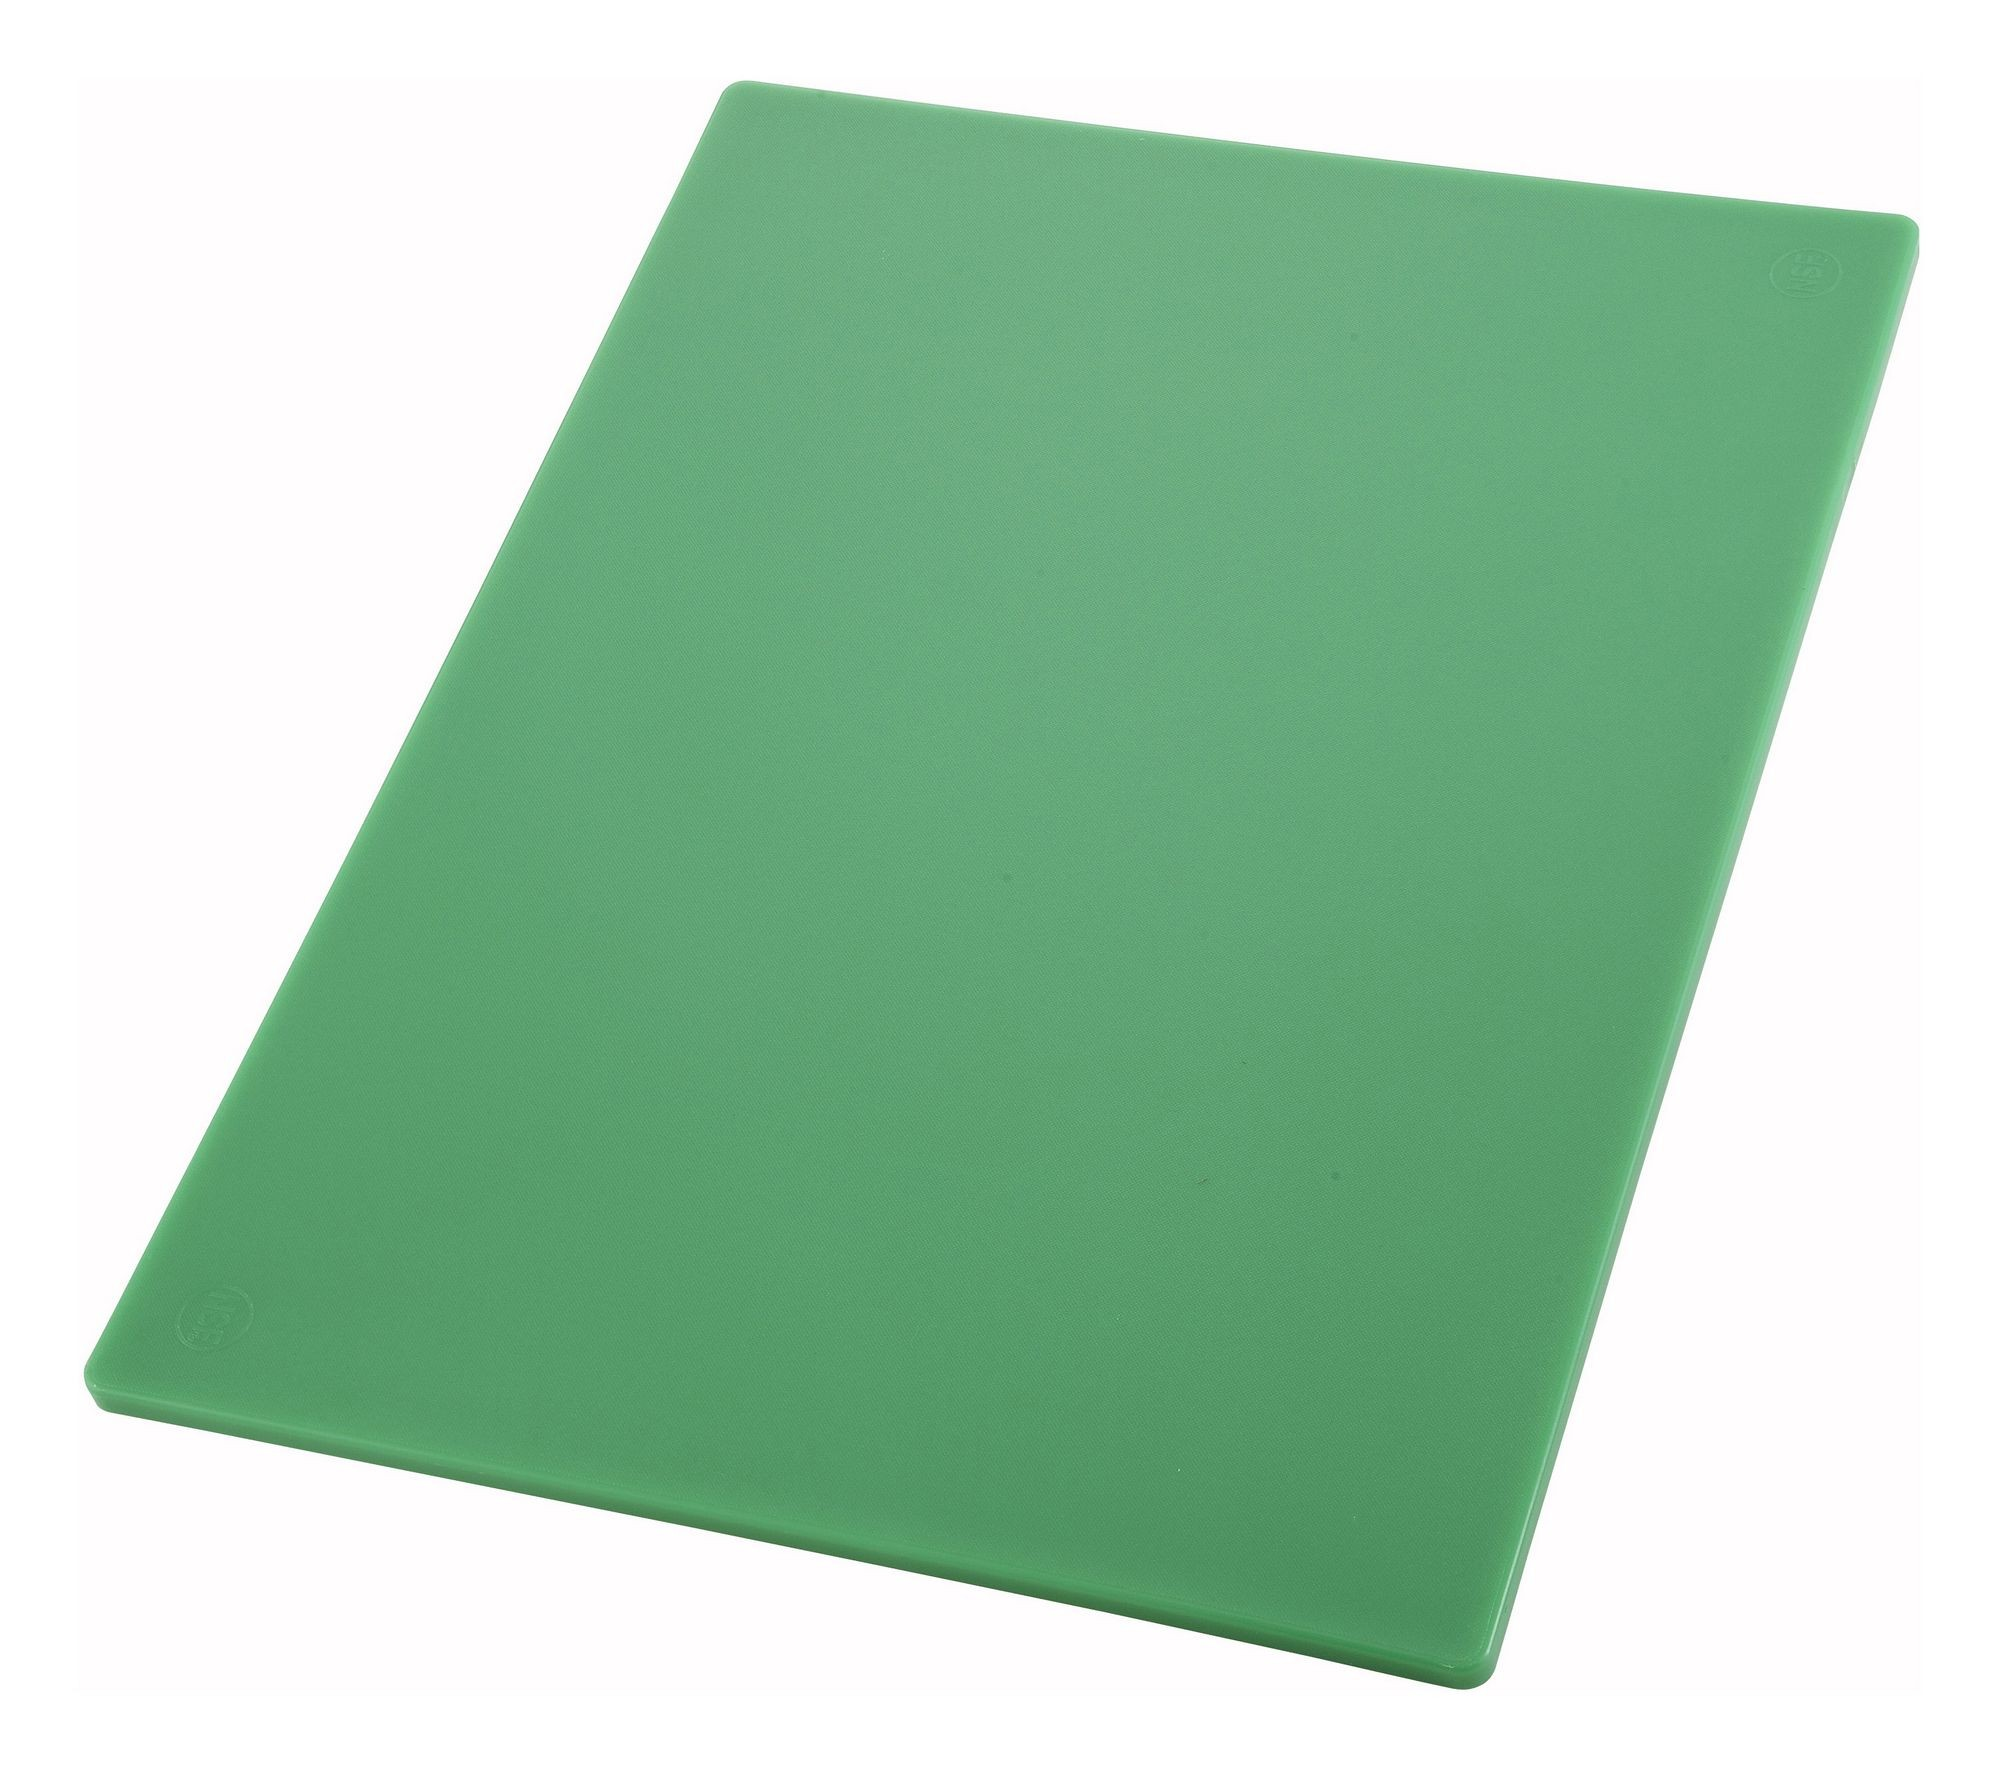 "Winco CBGR-1520 Green Plastic Cutting Board 15"" x 20"" x 1/2"""